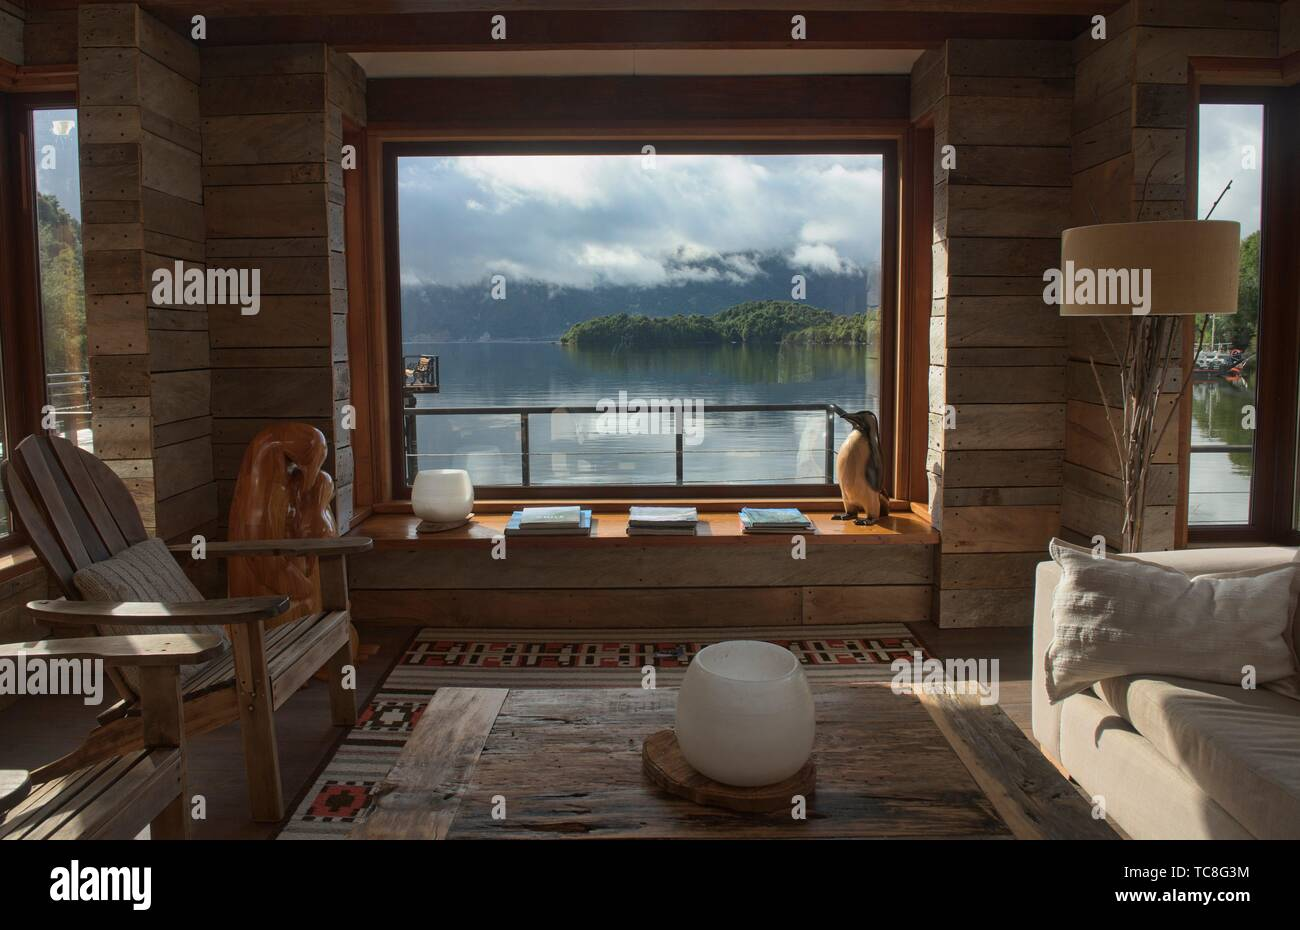 View of the fiord, Puyuhuapi Lodge, Patagonia, Aysen, Chile. - Stock Image